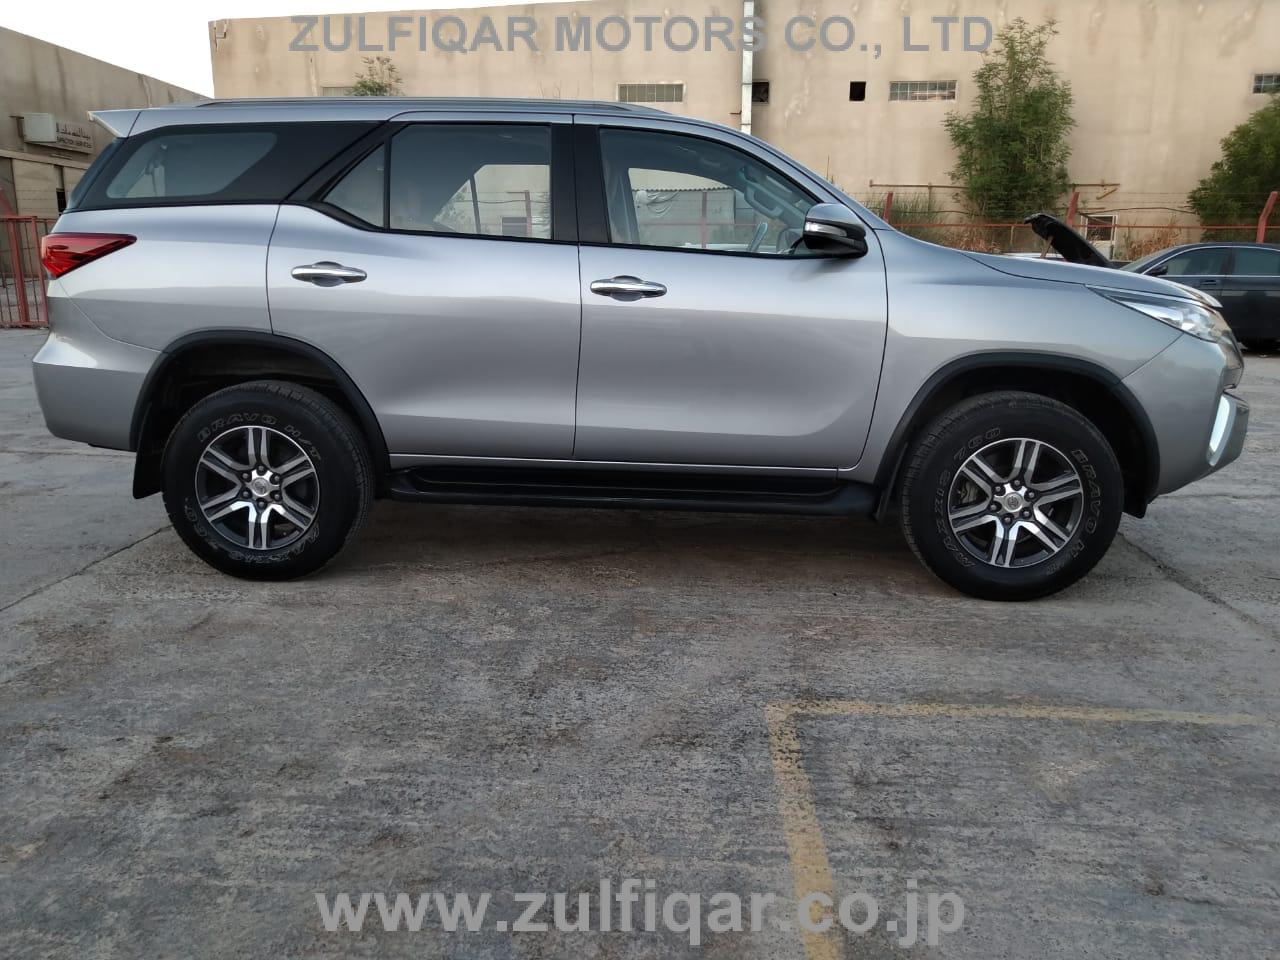 TOYOTA FORTUNER 2017 Image 8